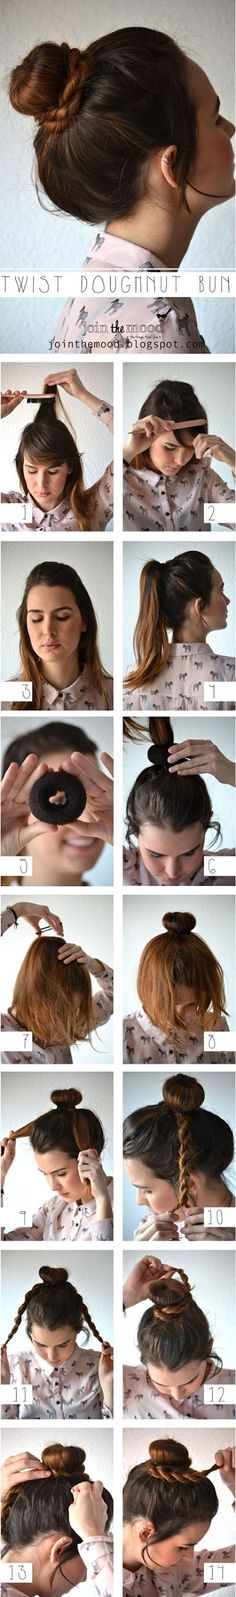 How To Make Twist Doughnut Bun For Your Hair | Shes Beautiful